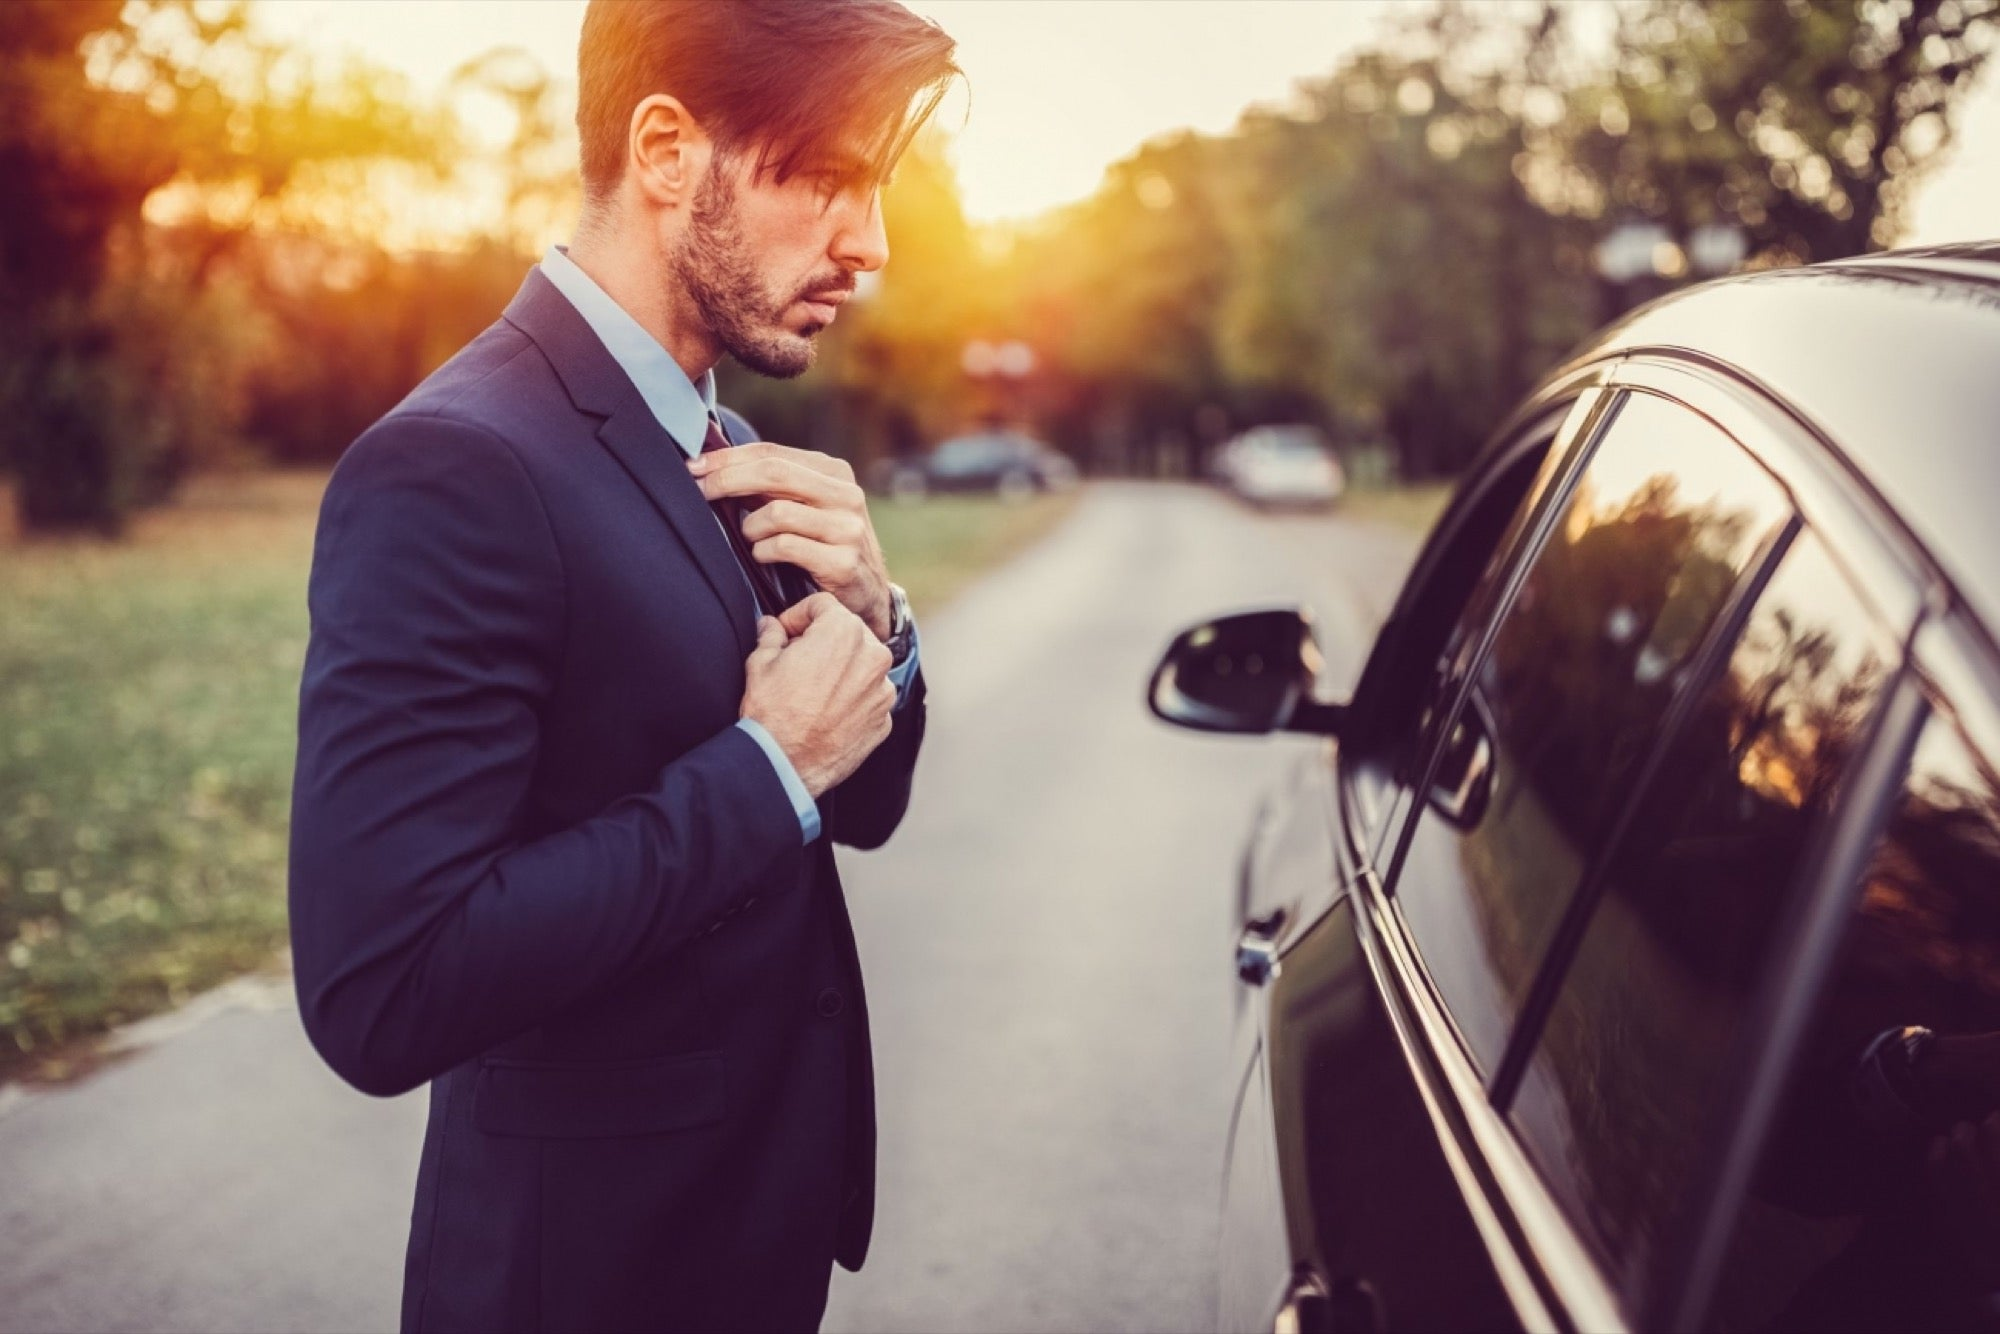 5 Steps to Finding a Personal Style that Exudes Success